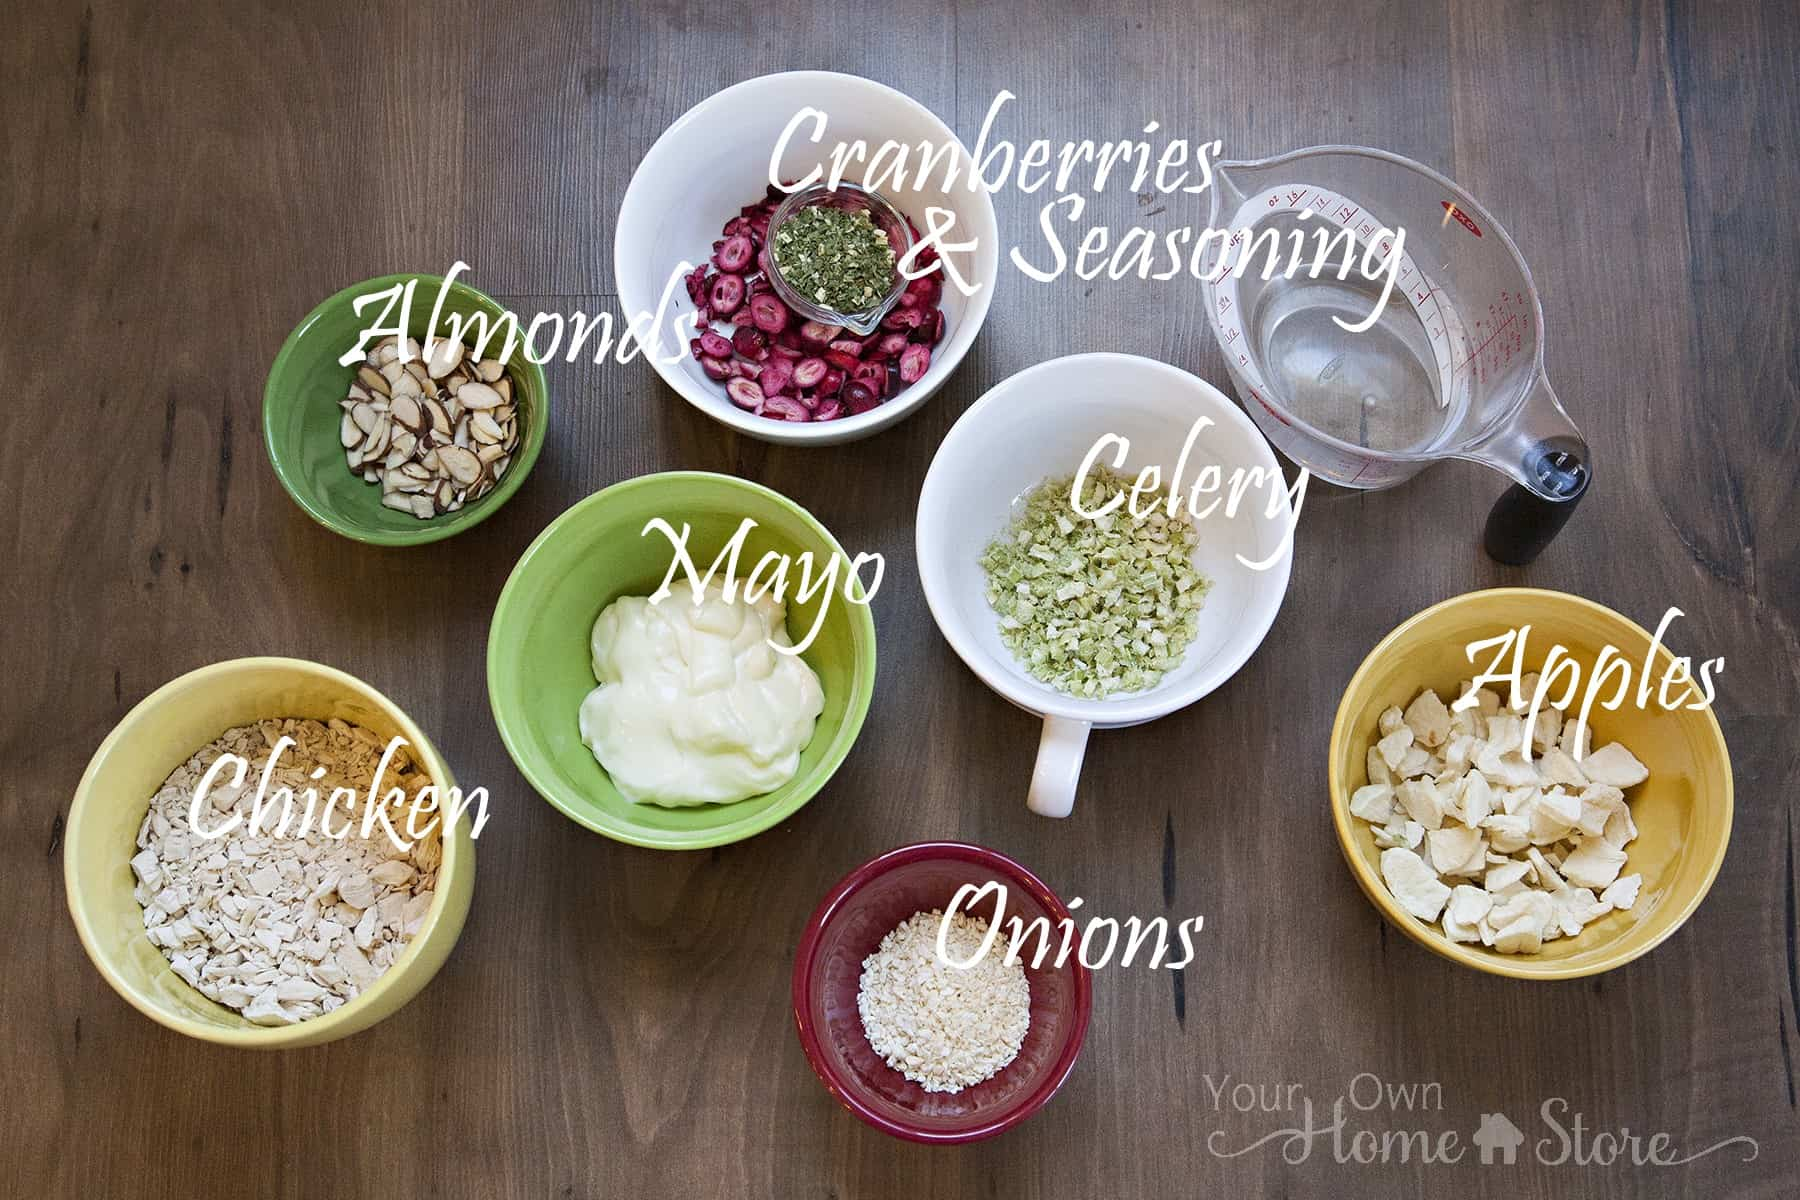 Quick and Easy Chicken Salad Ingredients from Simple Family Preparedness https://simplefamilypreparedness.com/chicken-salad/